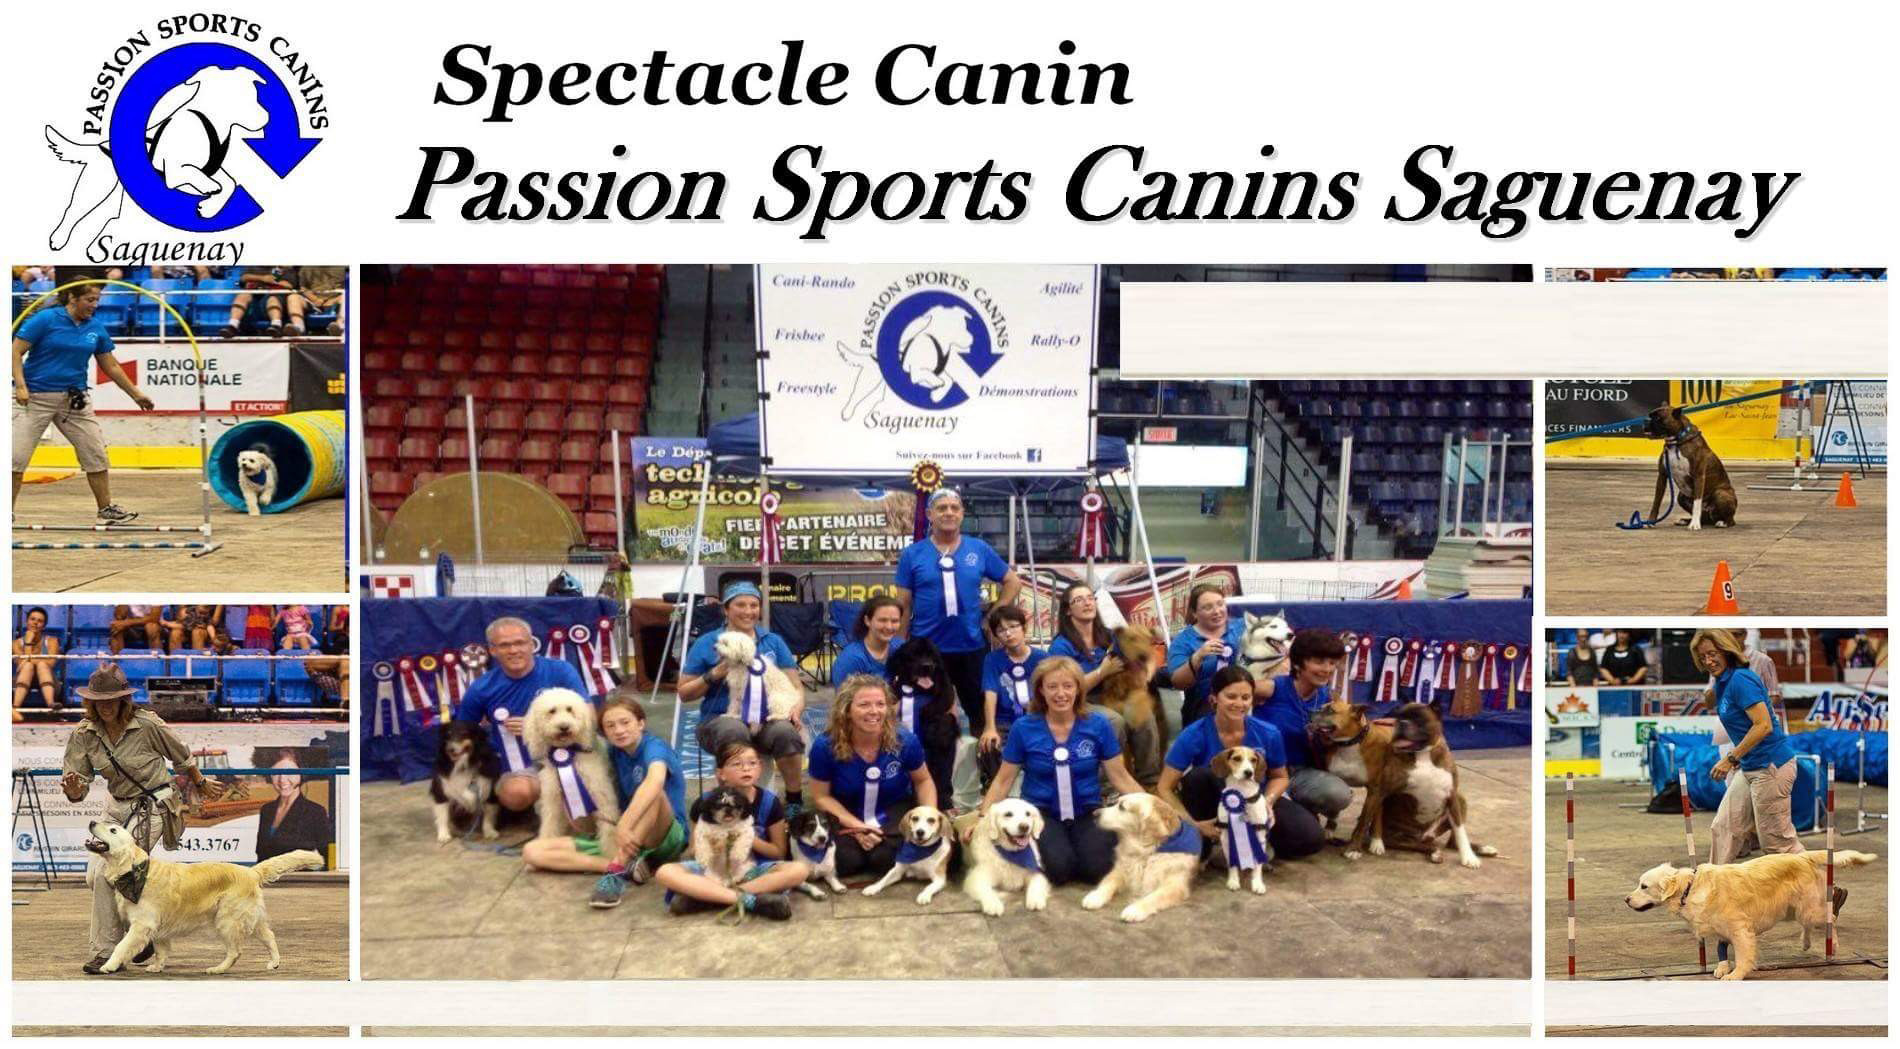 Spectacle canin